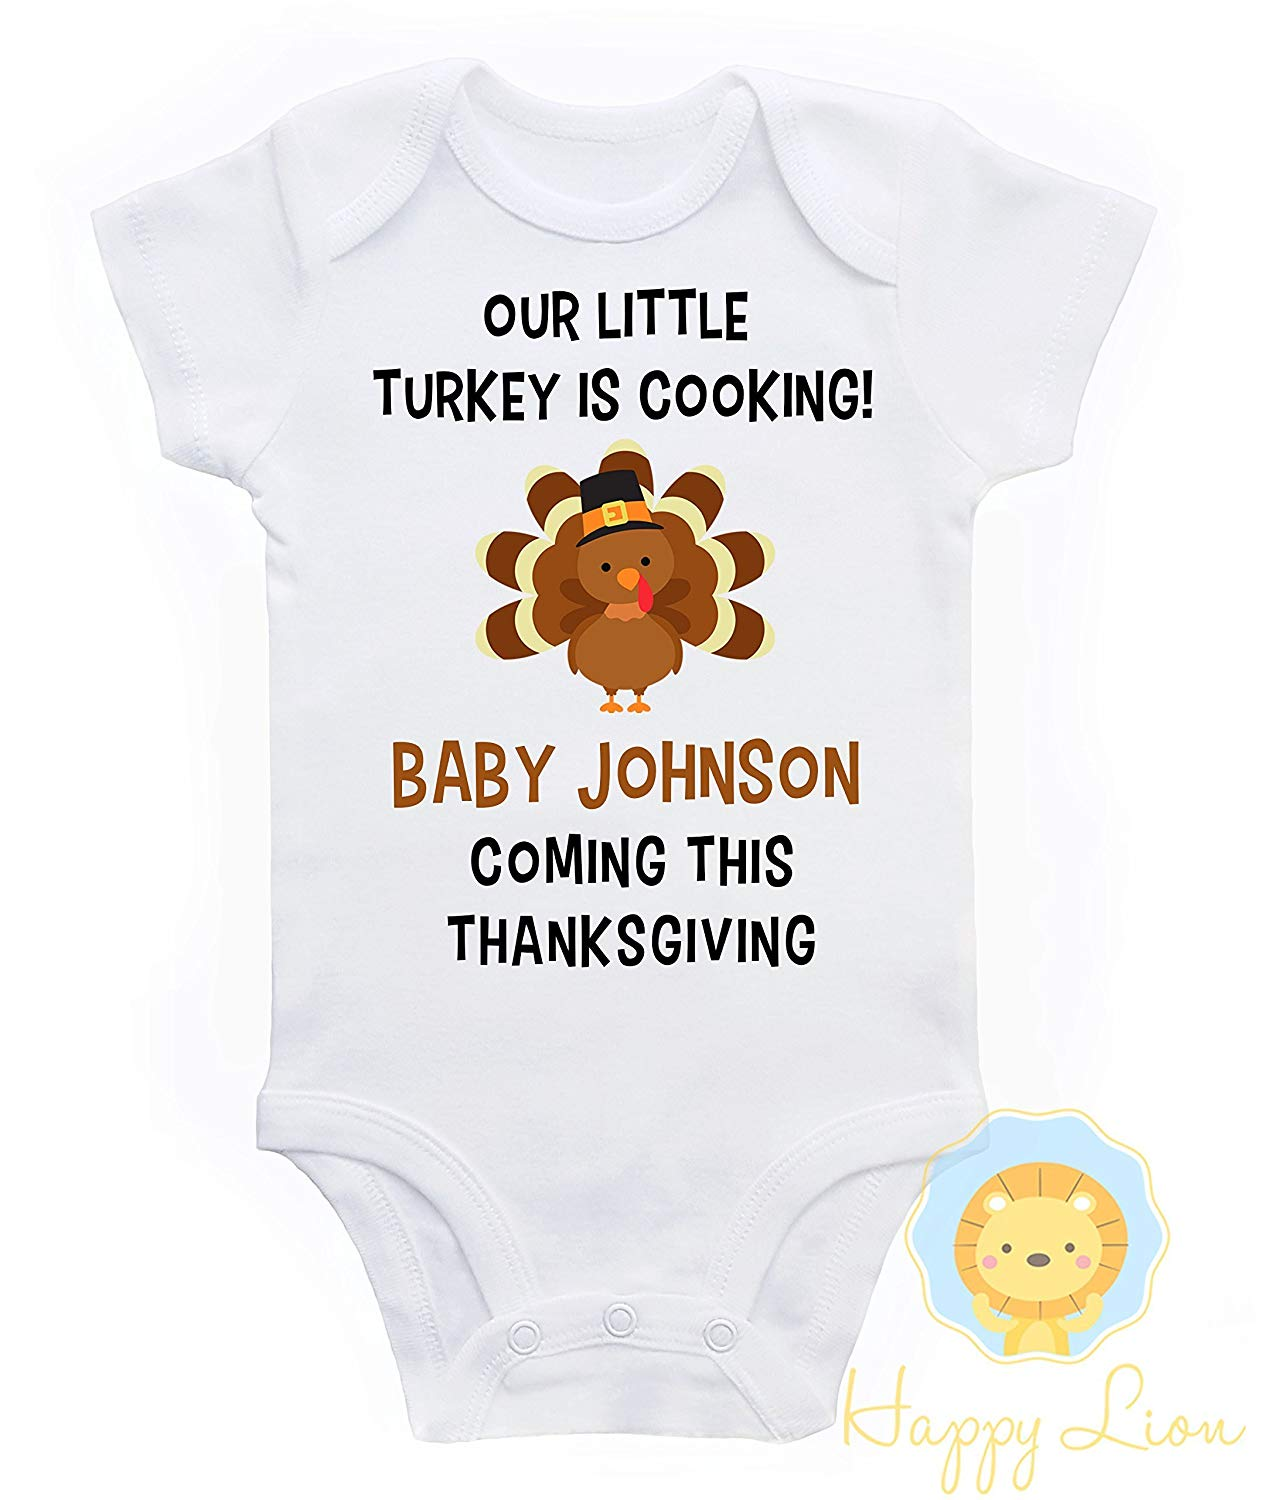 71878b89f Get Quotations · Happy Lion Clothing - Thanksgiving pregnancy Announcement  Onesie®, pregnancy announcement, thanksgiving announcement Onesie